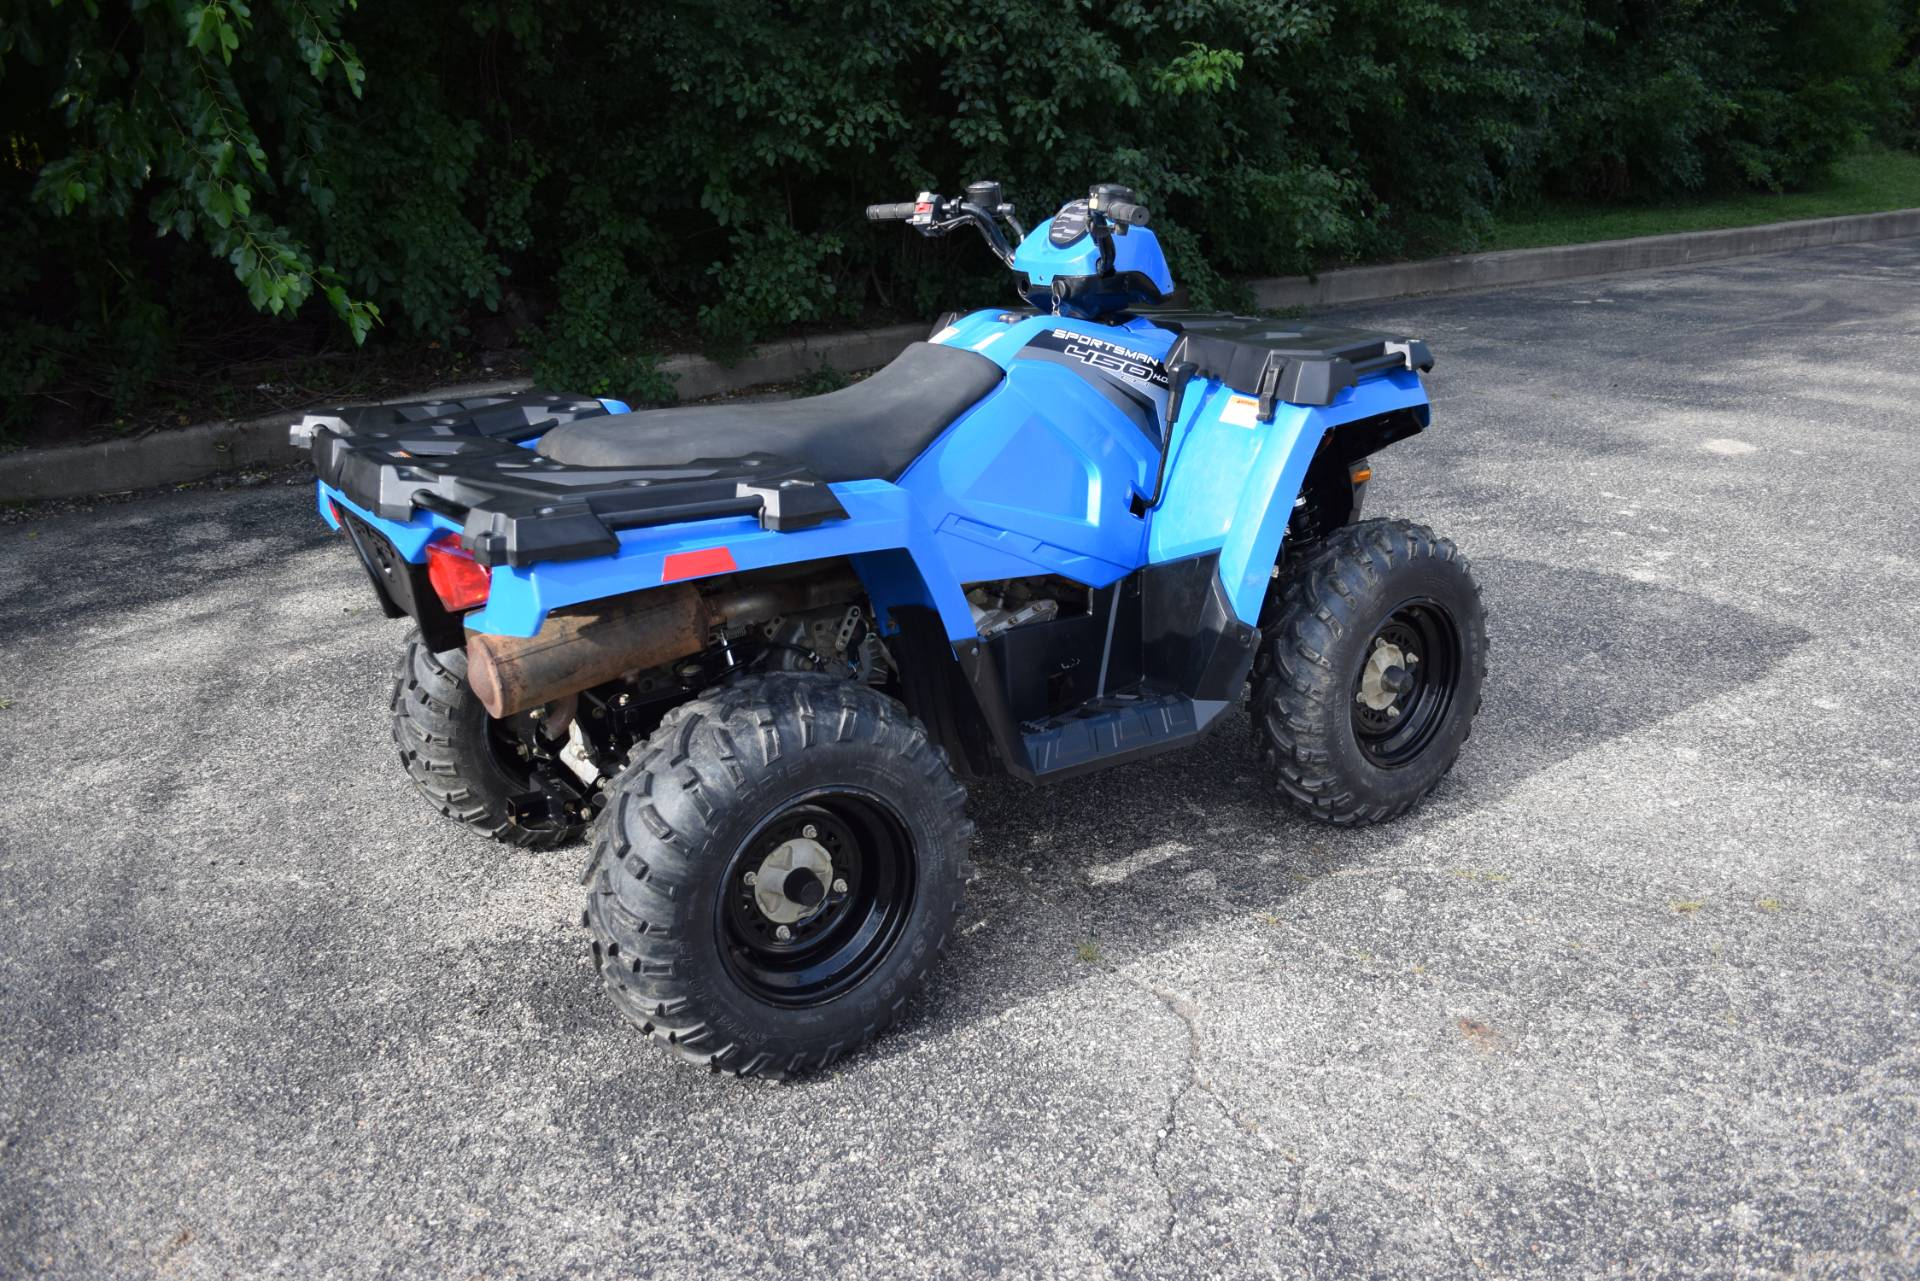 2017 Polaris Sportsman 450 H.O. in Wauconda, Illinois - Photo 9